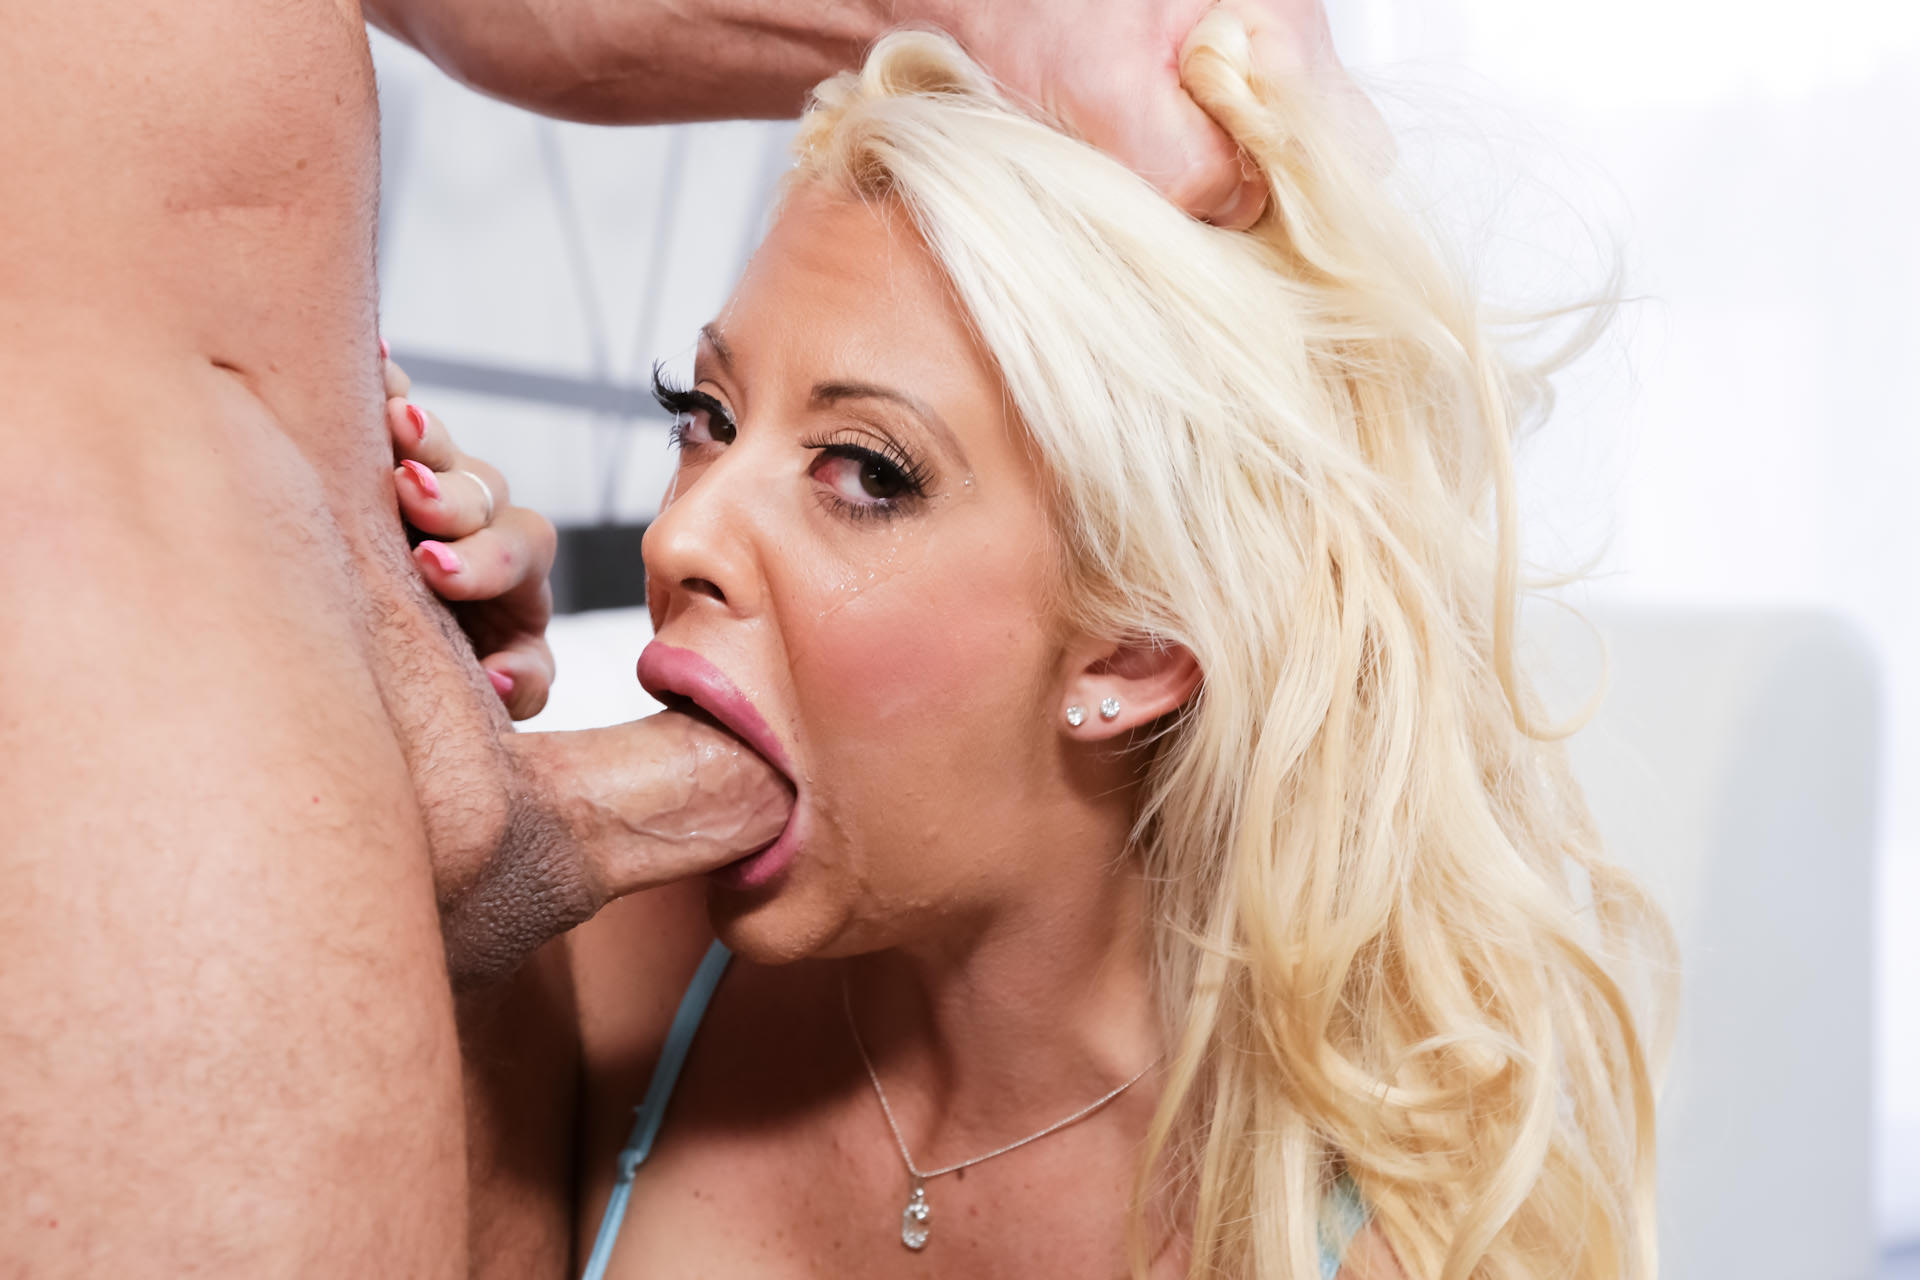 Courtney taylor throated